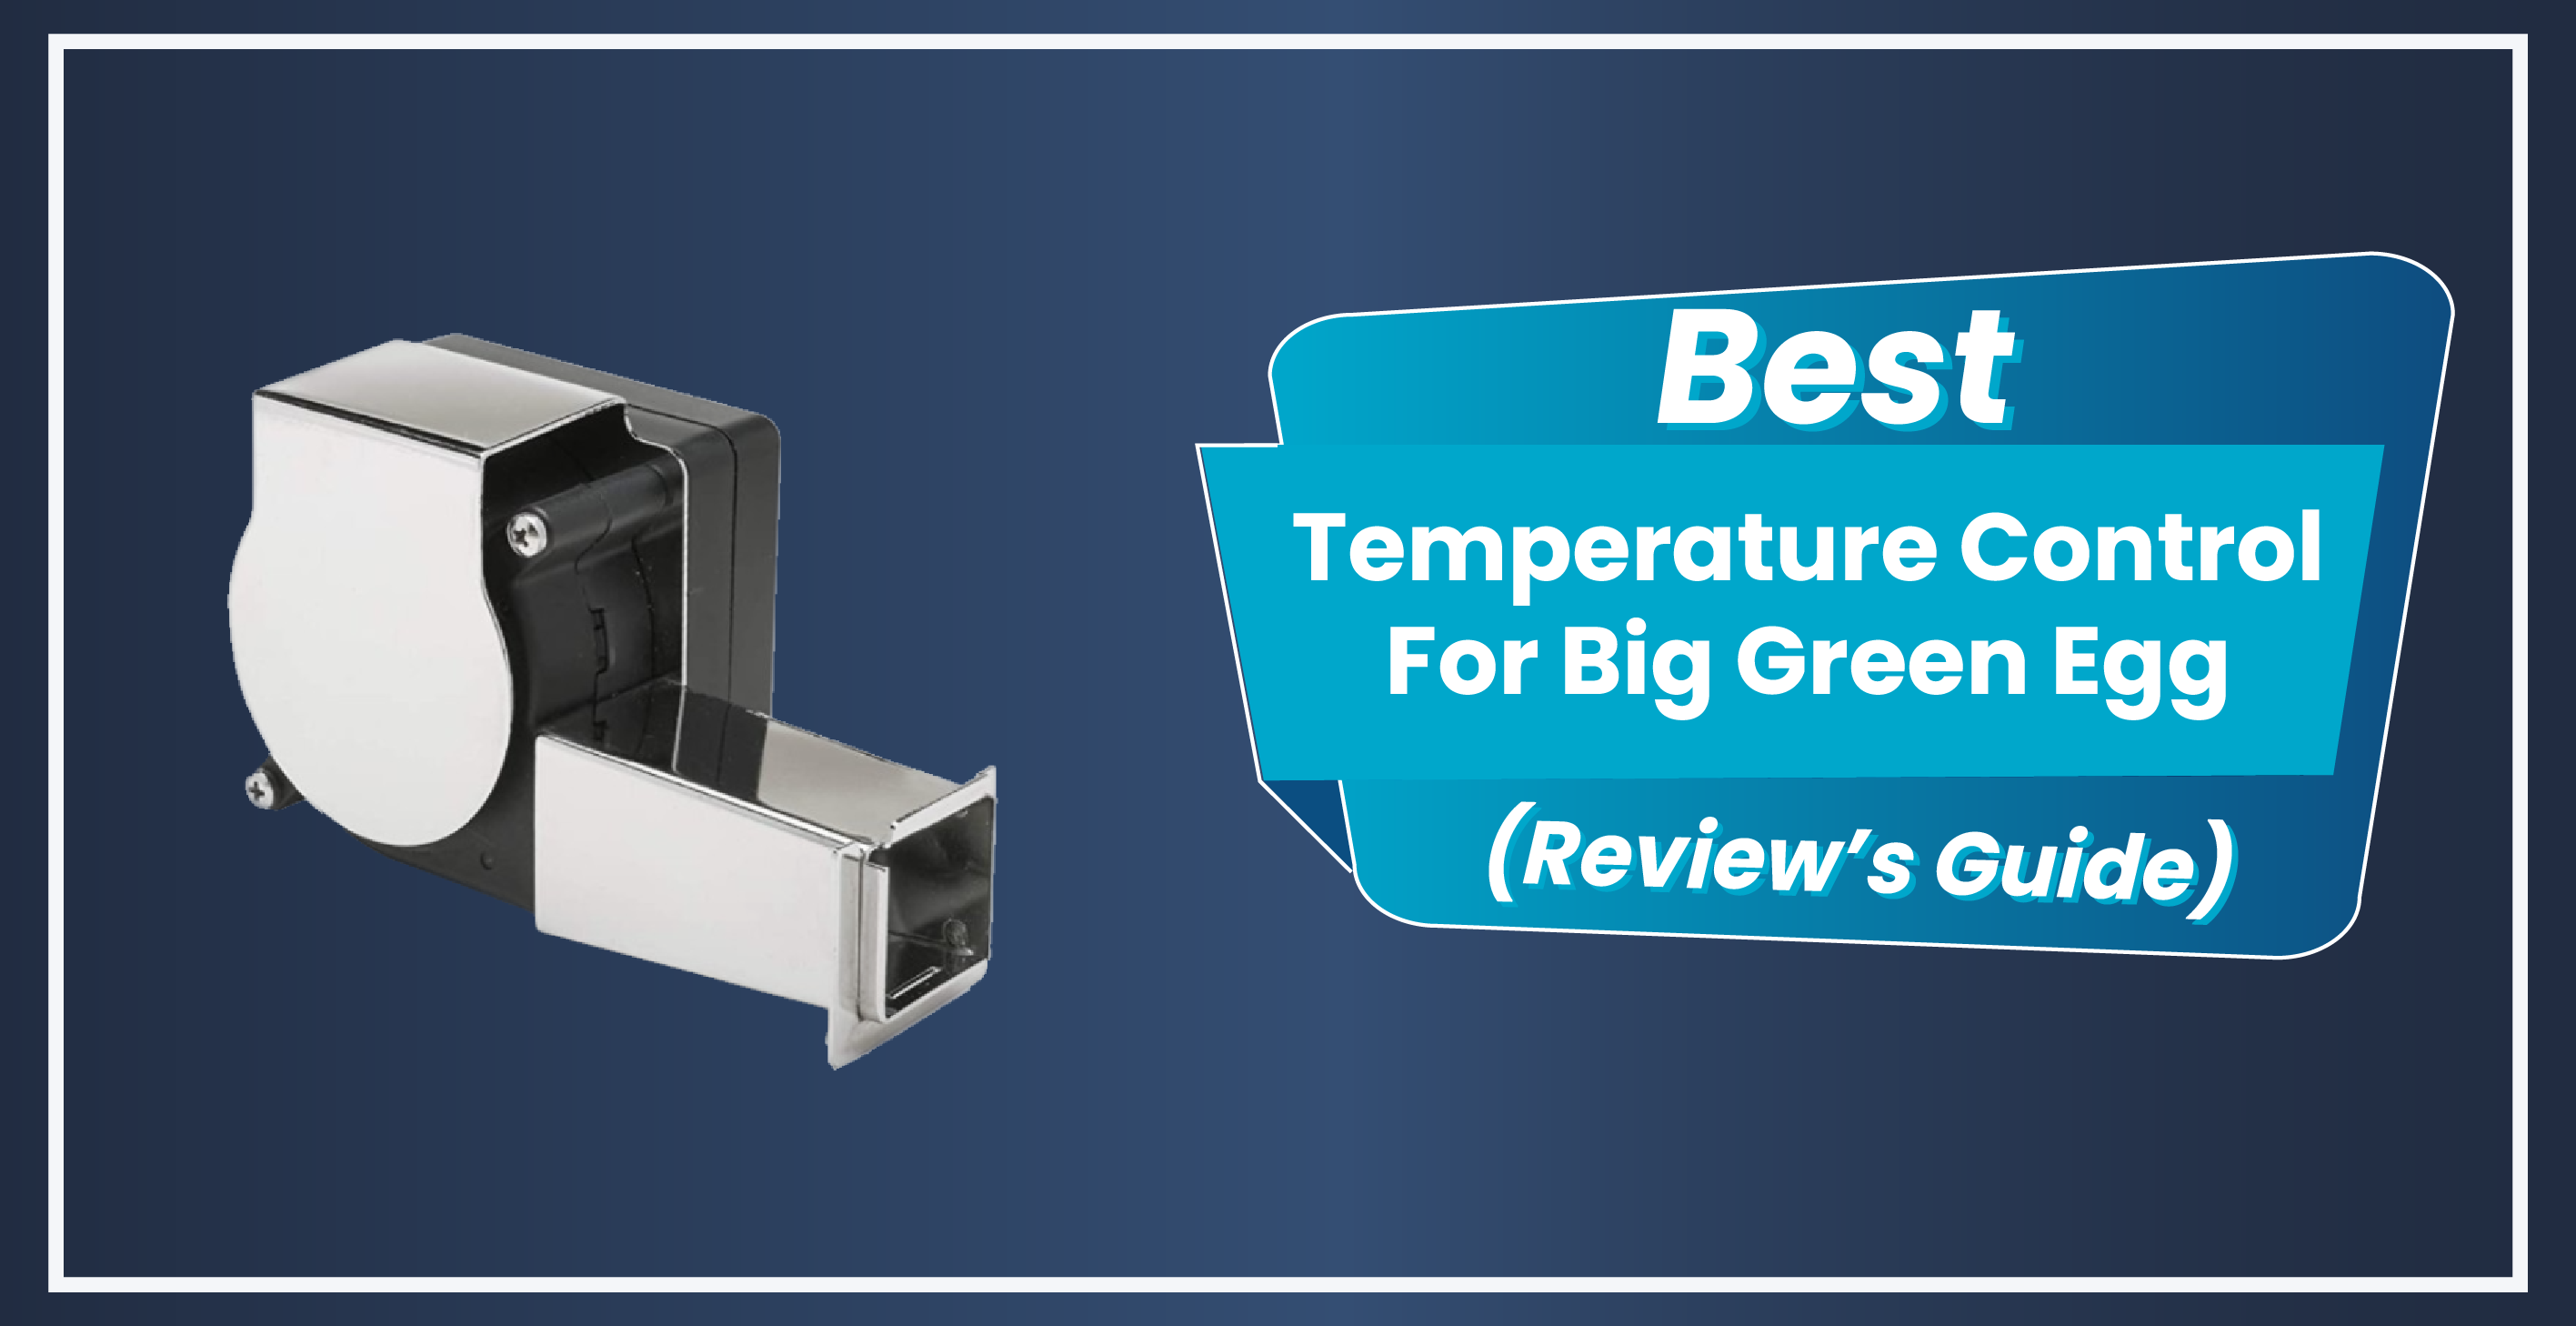 Best Temperature Control For Big Green Egg To Buy In 2021